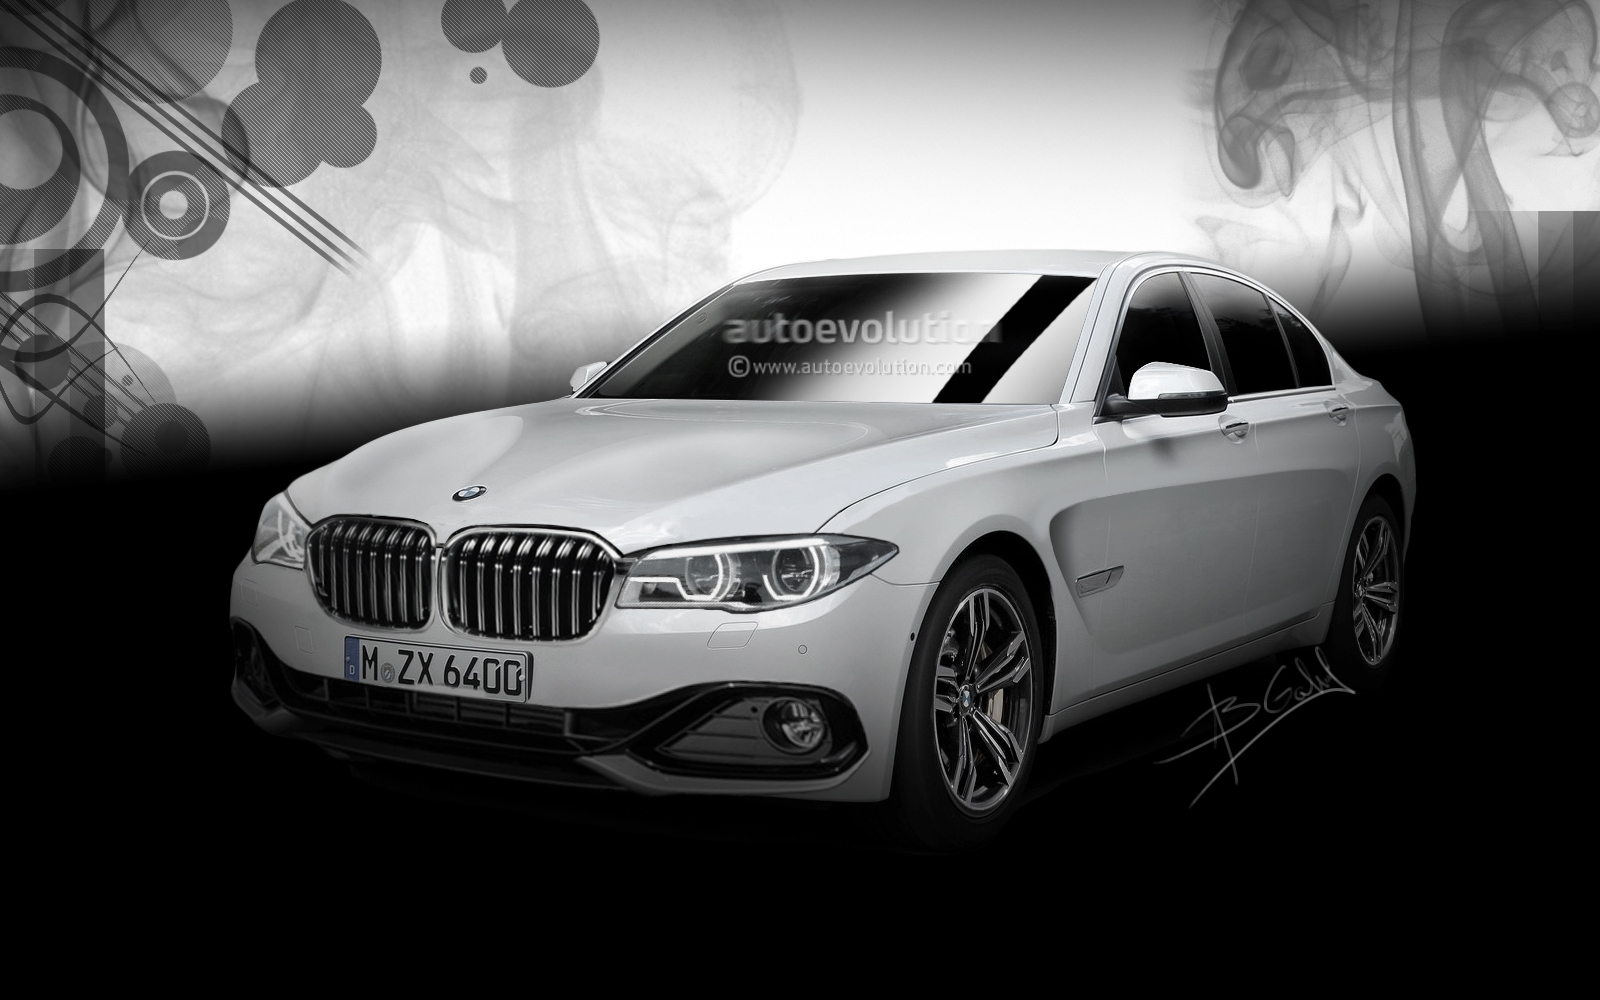 2016 BMW G11 7 Series Rendered A New Approach For The Flagship